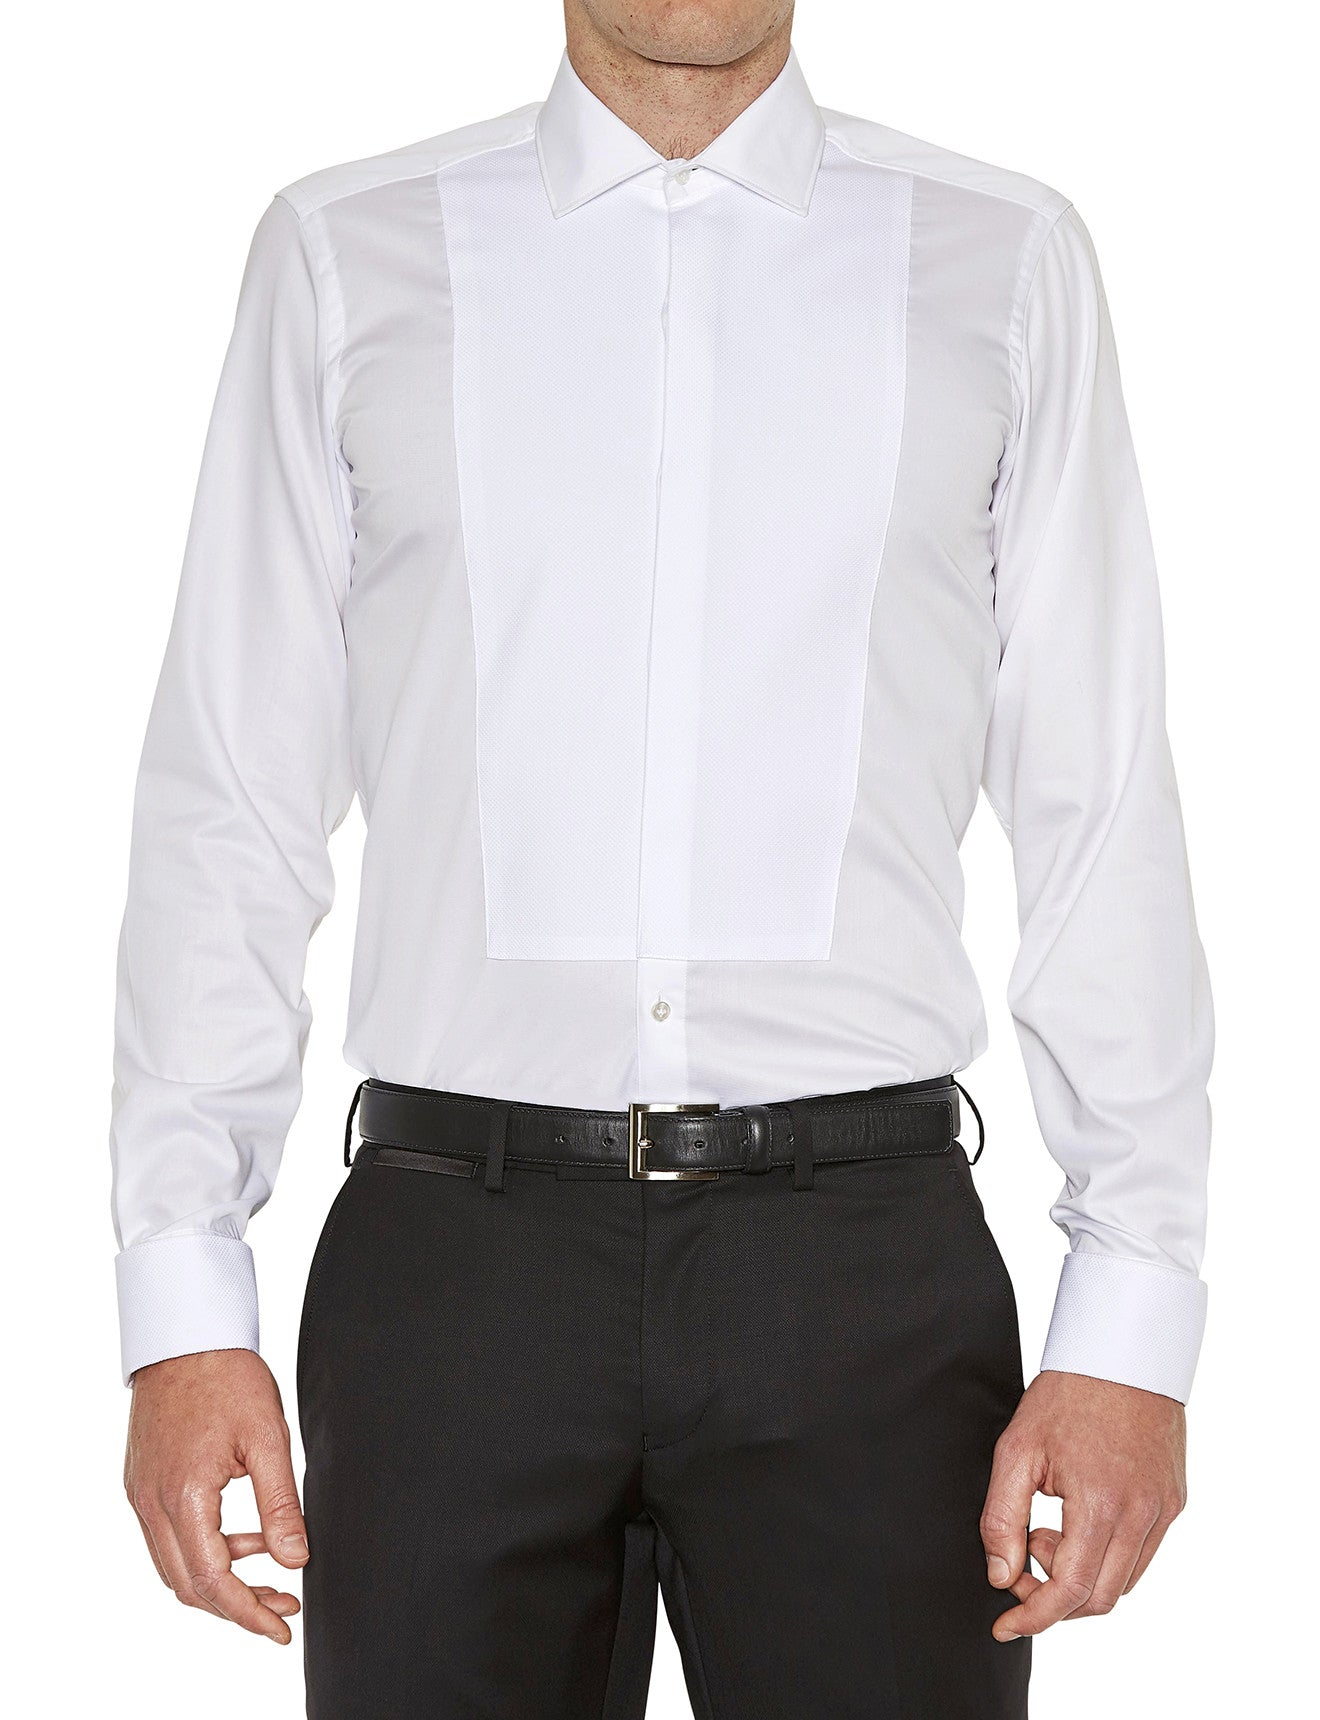 Royale Dinner Shirt in White